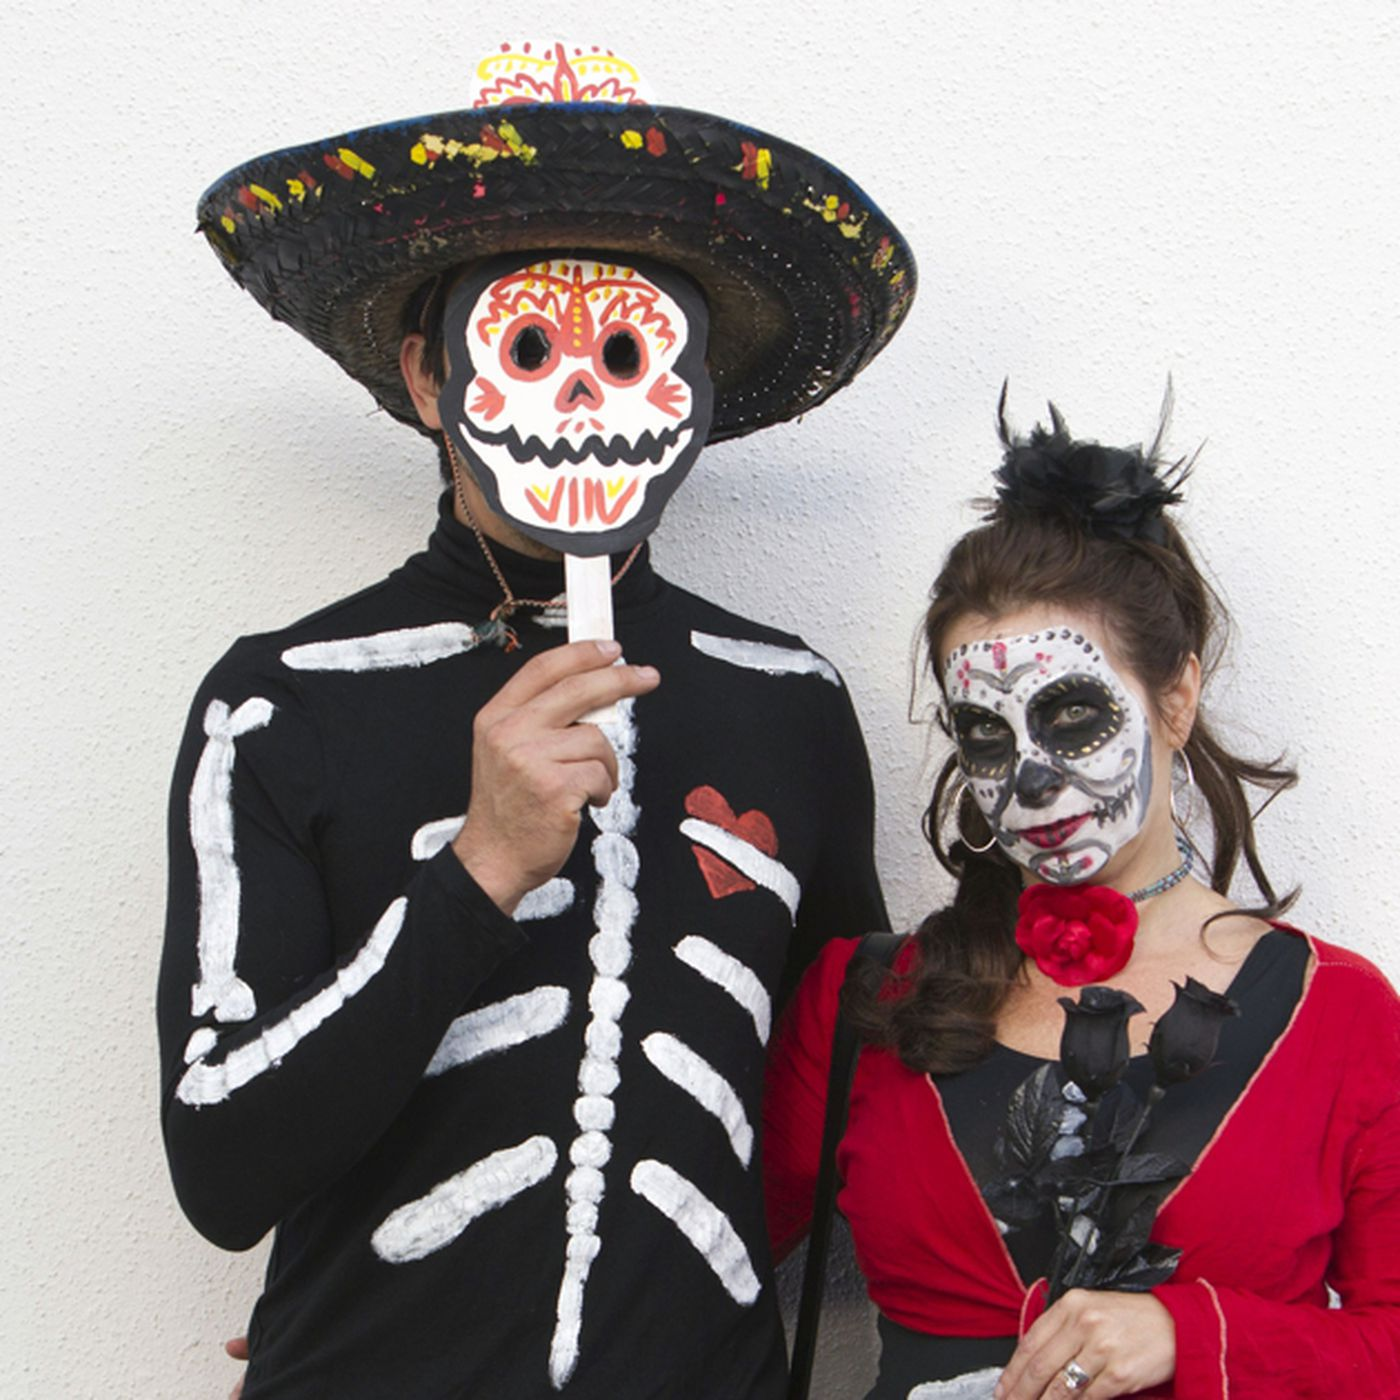 4ccfc7ff2e19 18 things you might not know about Mexico's Day of the Dead ...